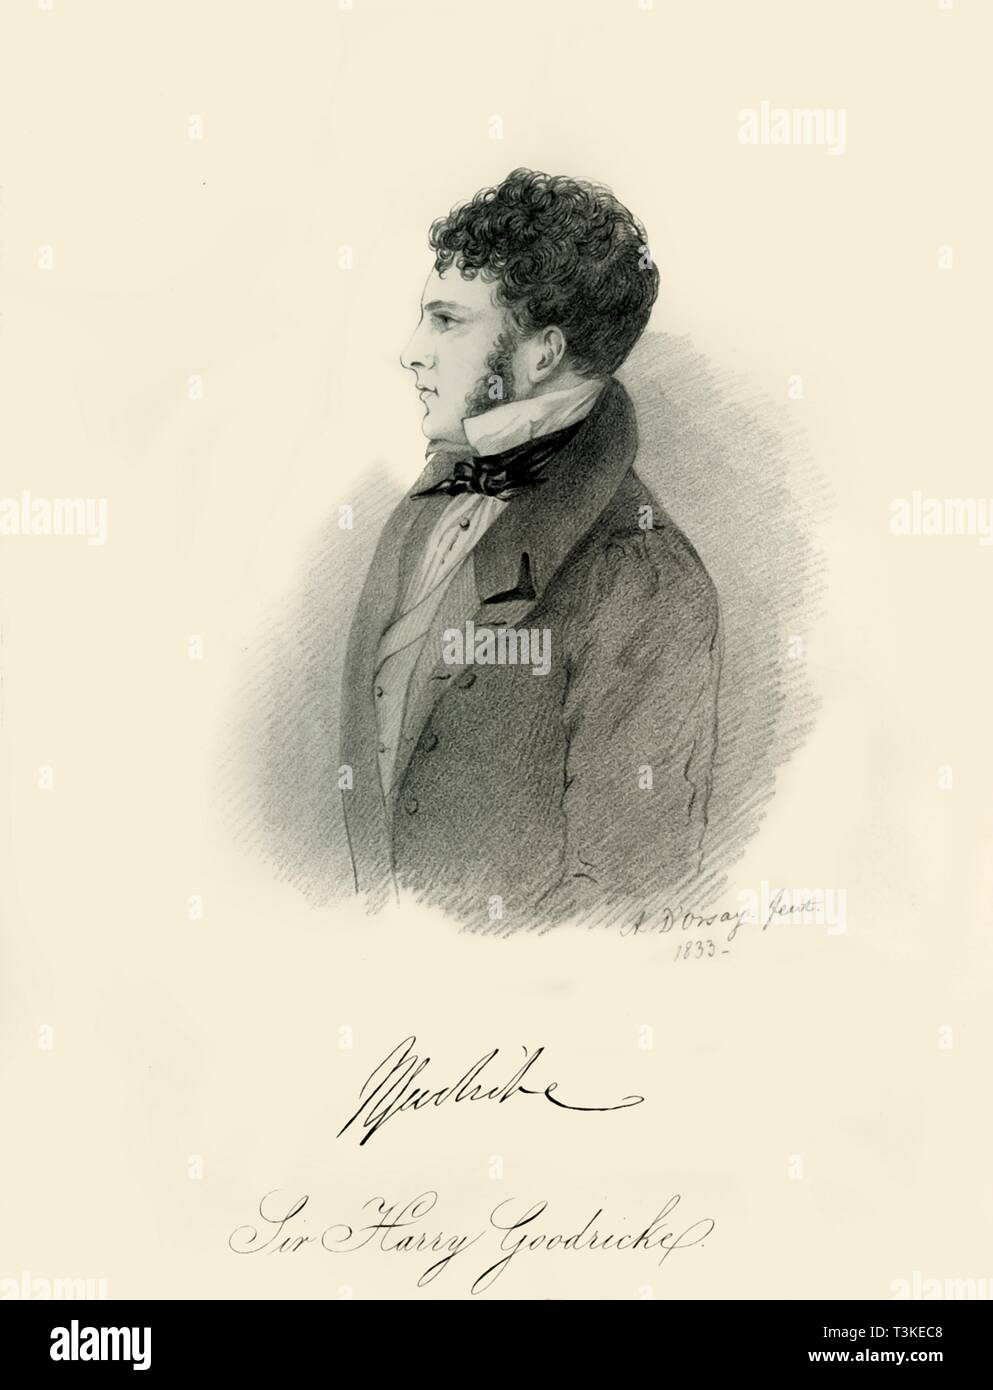 """'Sir Harry Goodricke', 1833. Portrait of British aristocrat Sir Henry James Goodricke (1797-1833). From """"Portraits by Count D'Orsay"""", an album assembled by Lady Georgiana Codrington. [1850s] - Stock Image"""